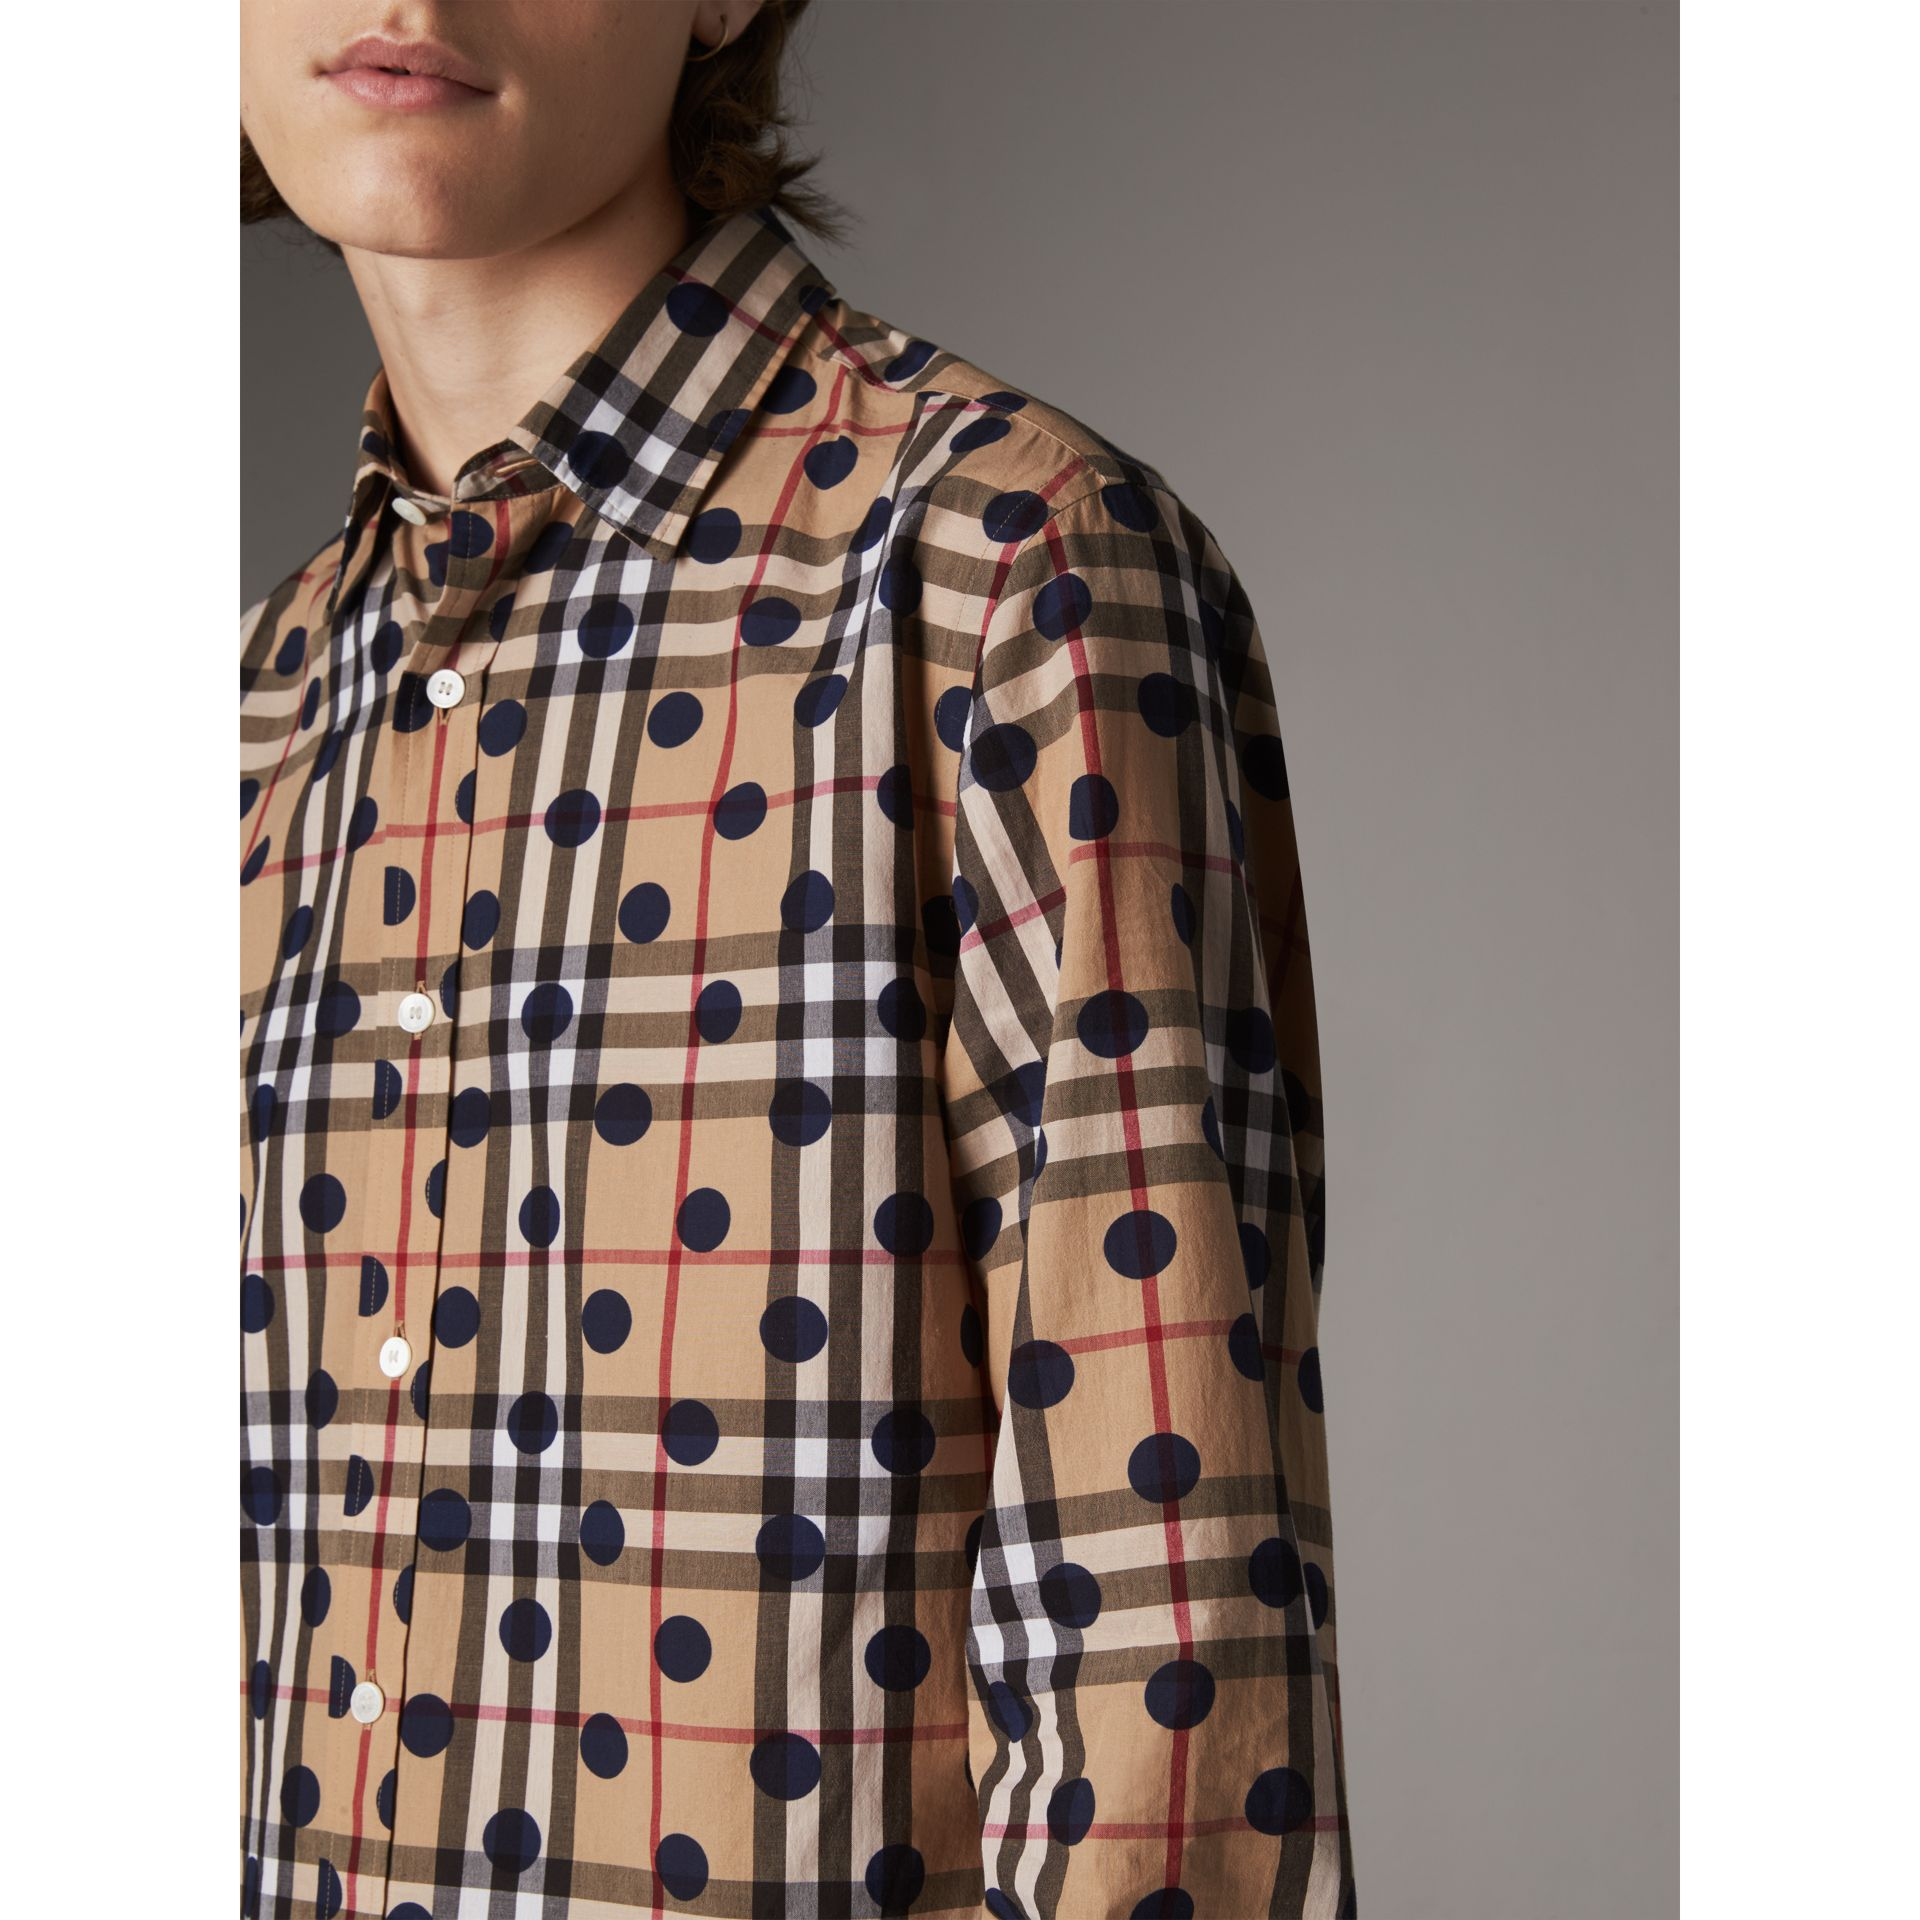 Spot Print Check Cotton Shirt in Navy - Men | Burberry - gallery image 2